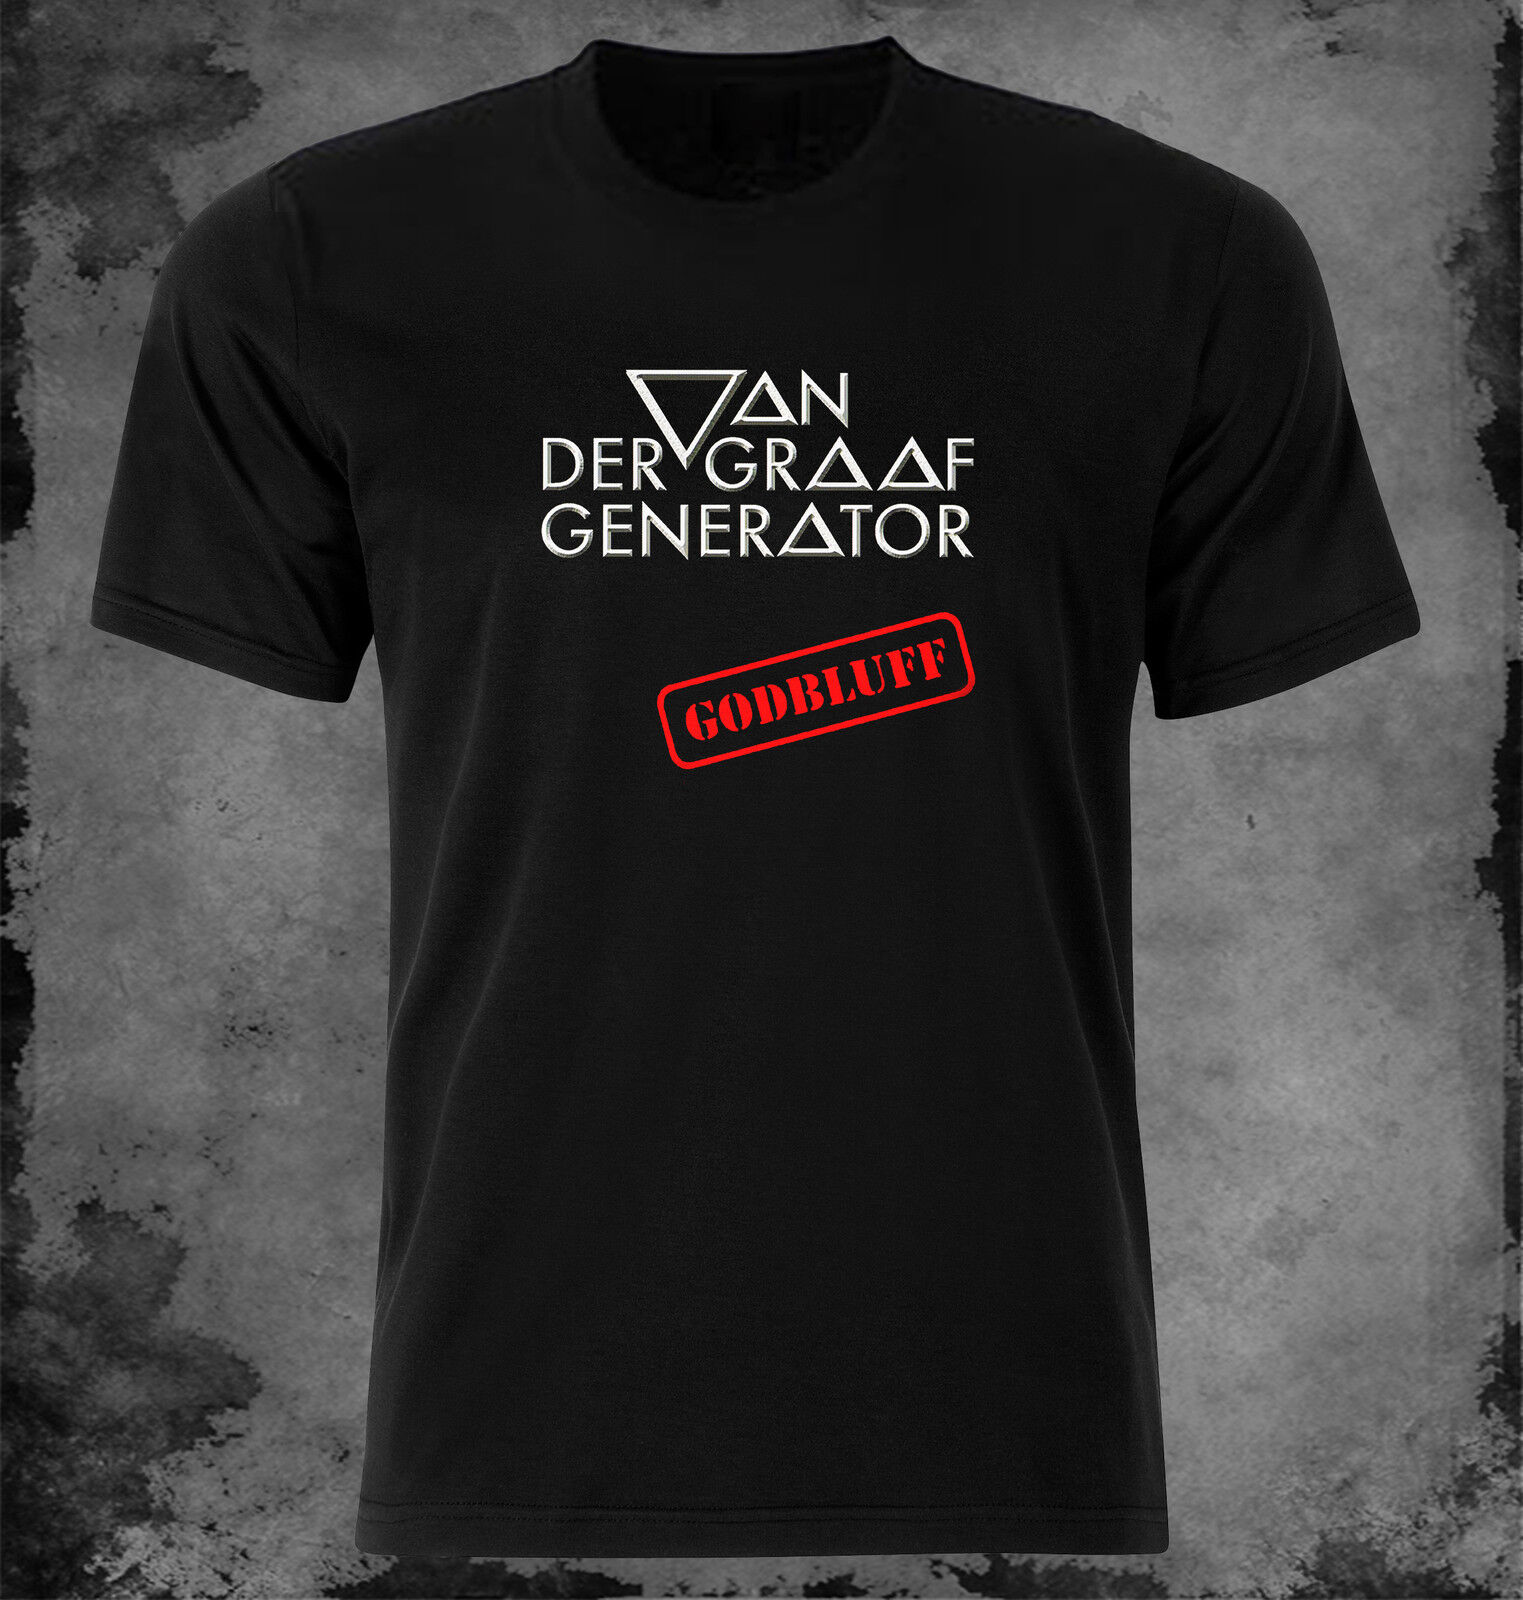 Van Der Graaf Generator Godbluff T Shirt Funny Unisex Casual Tshirt Top  White T Shirts Offensive T Shirts From Teeaddict, &Price